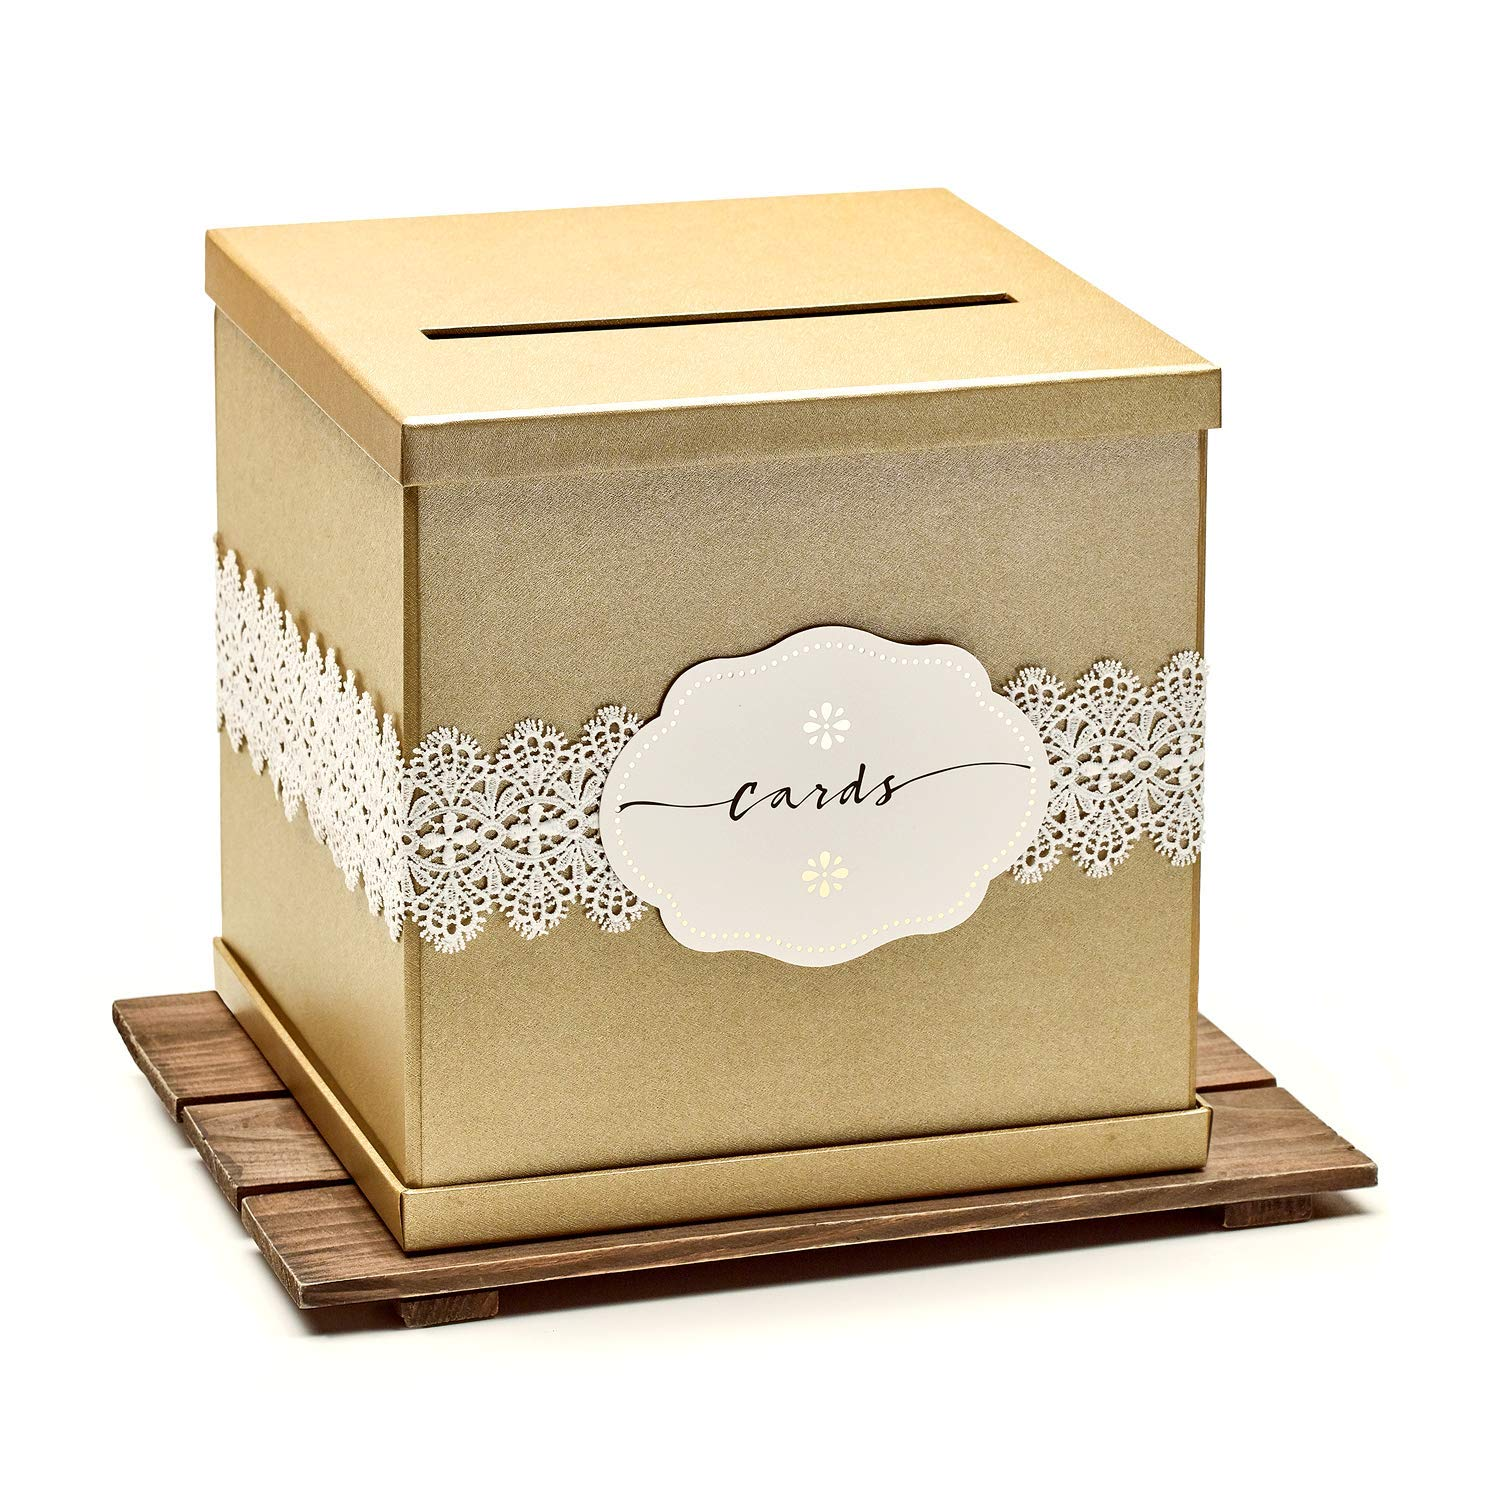 """Hayley Cherie - Gold Gift Card Box with White Lace and Cards Label - Gold Textured Finish - Large Size 10"""" x 10"""" - Perfect for Weddings, Baby Showers, Birthdays, Graduations"""